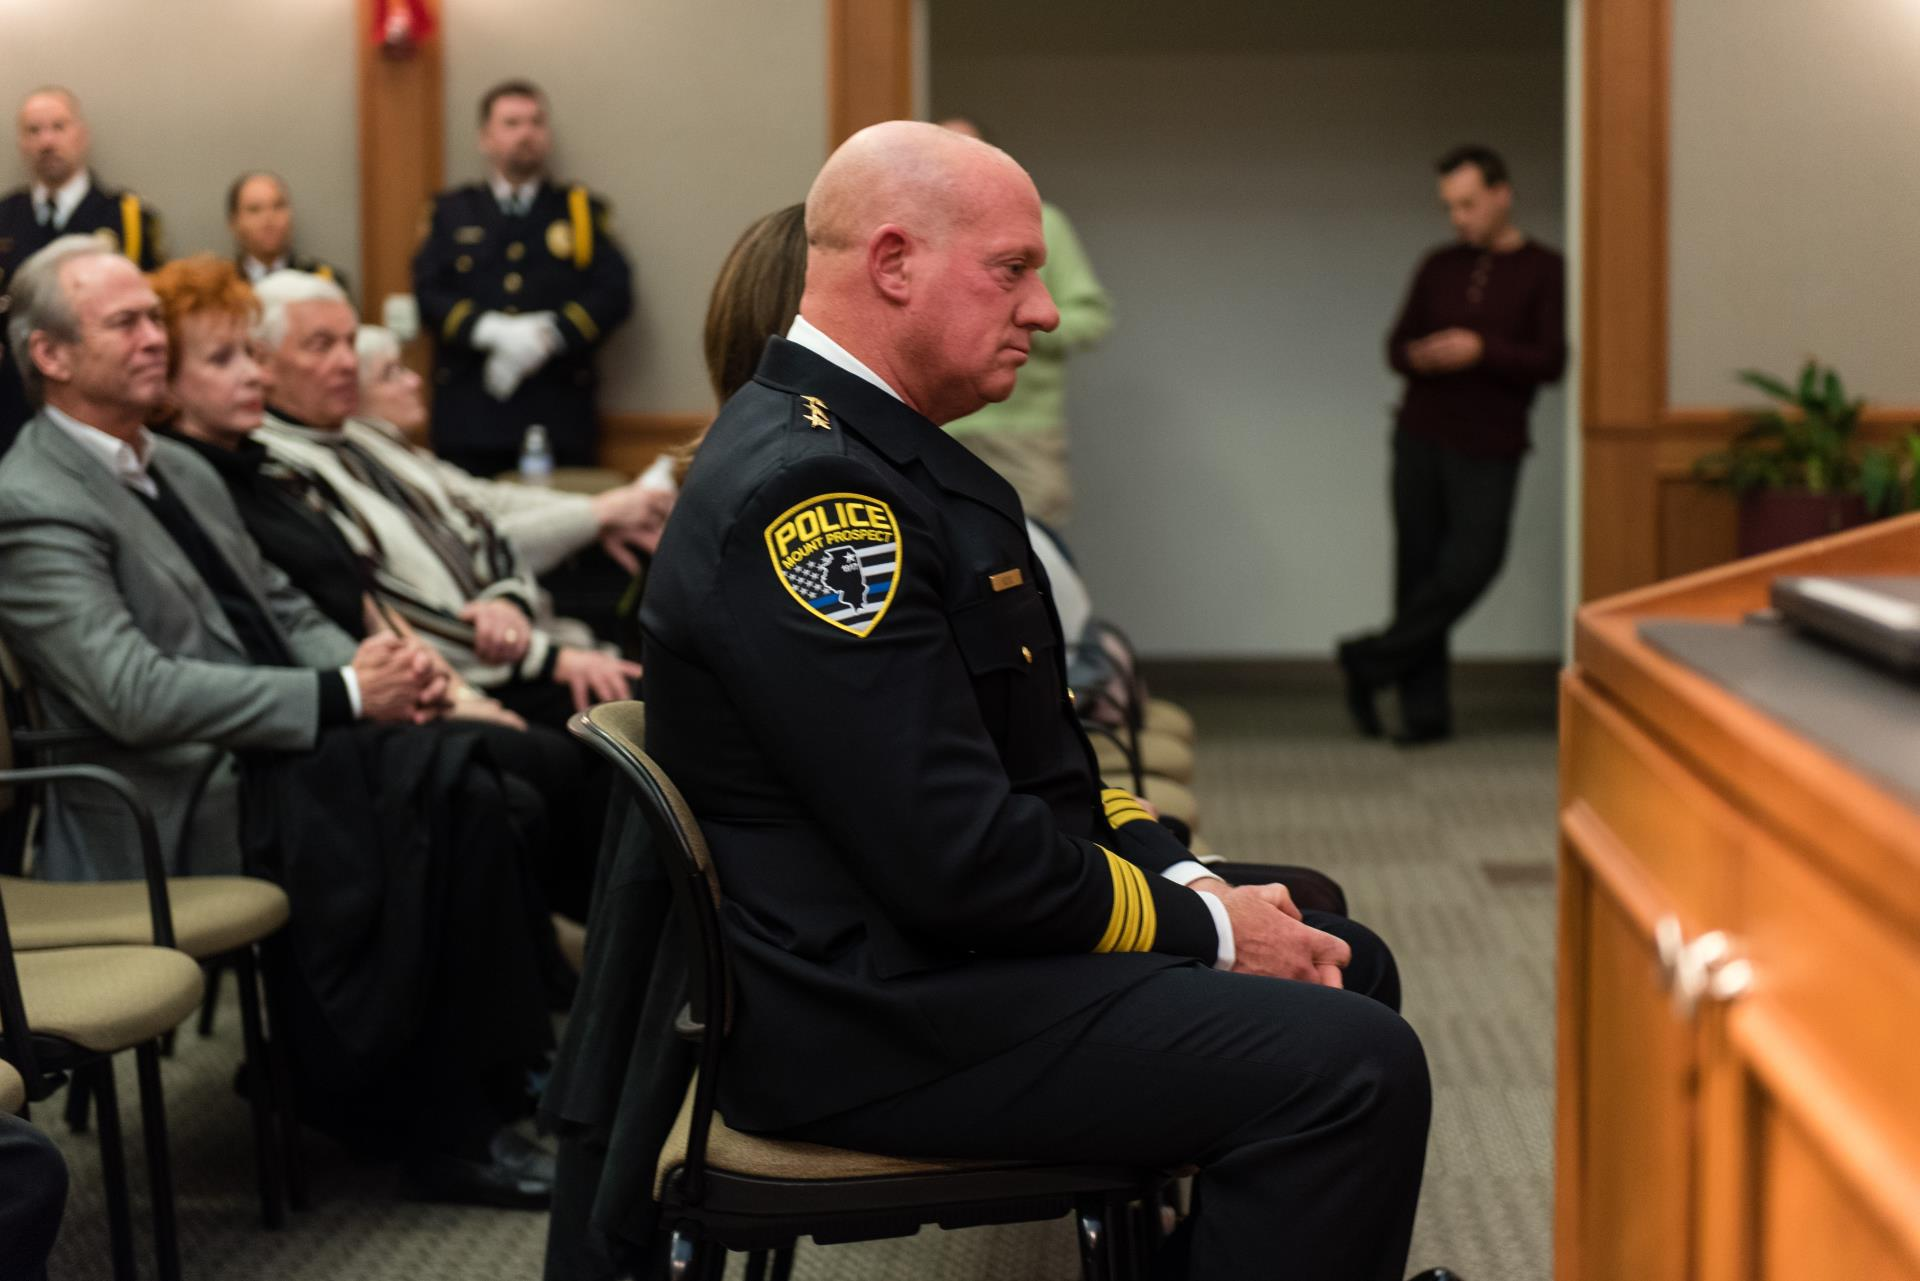 Chief Koziol Swearing-In Ceremony Final-4203